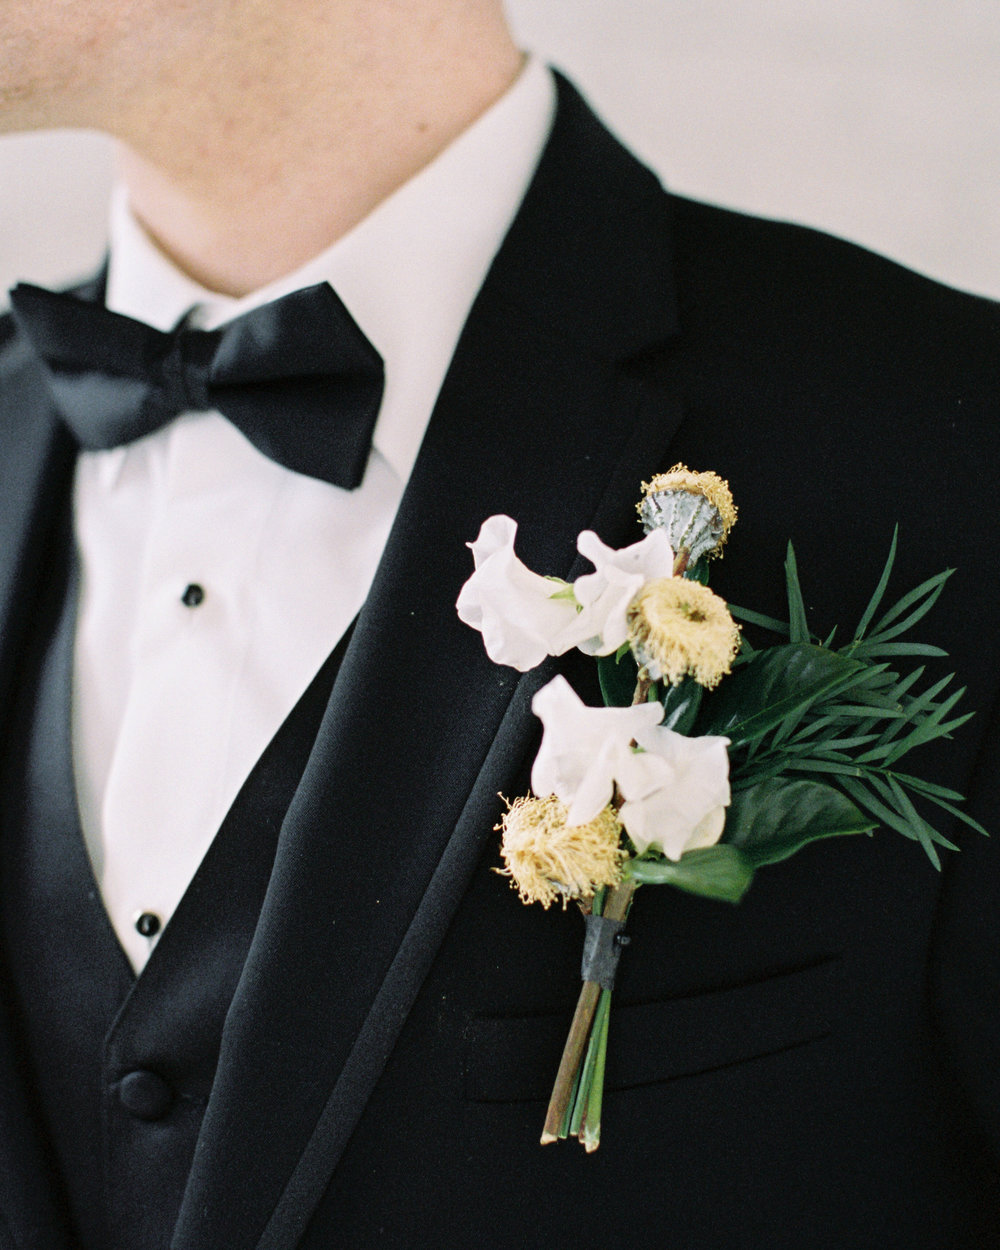 Grooms attire with boutonniere at modern wedding venue with lots of natural light, and beautiful greenery for this Chicago wedding styled shoot. Find more wedding inspiration at chitheewed.com!